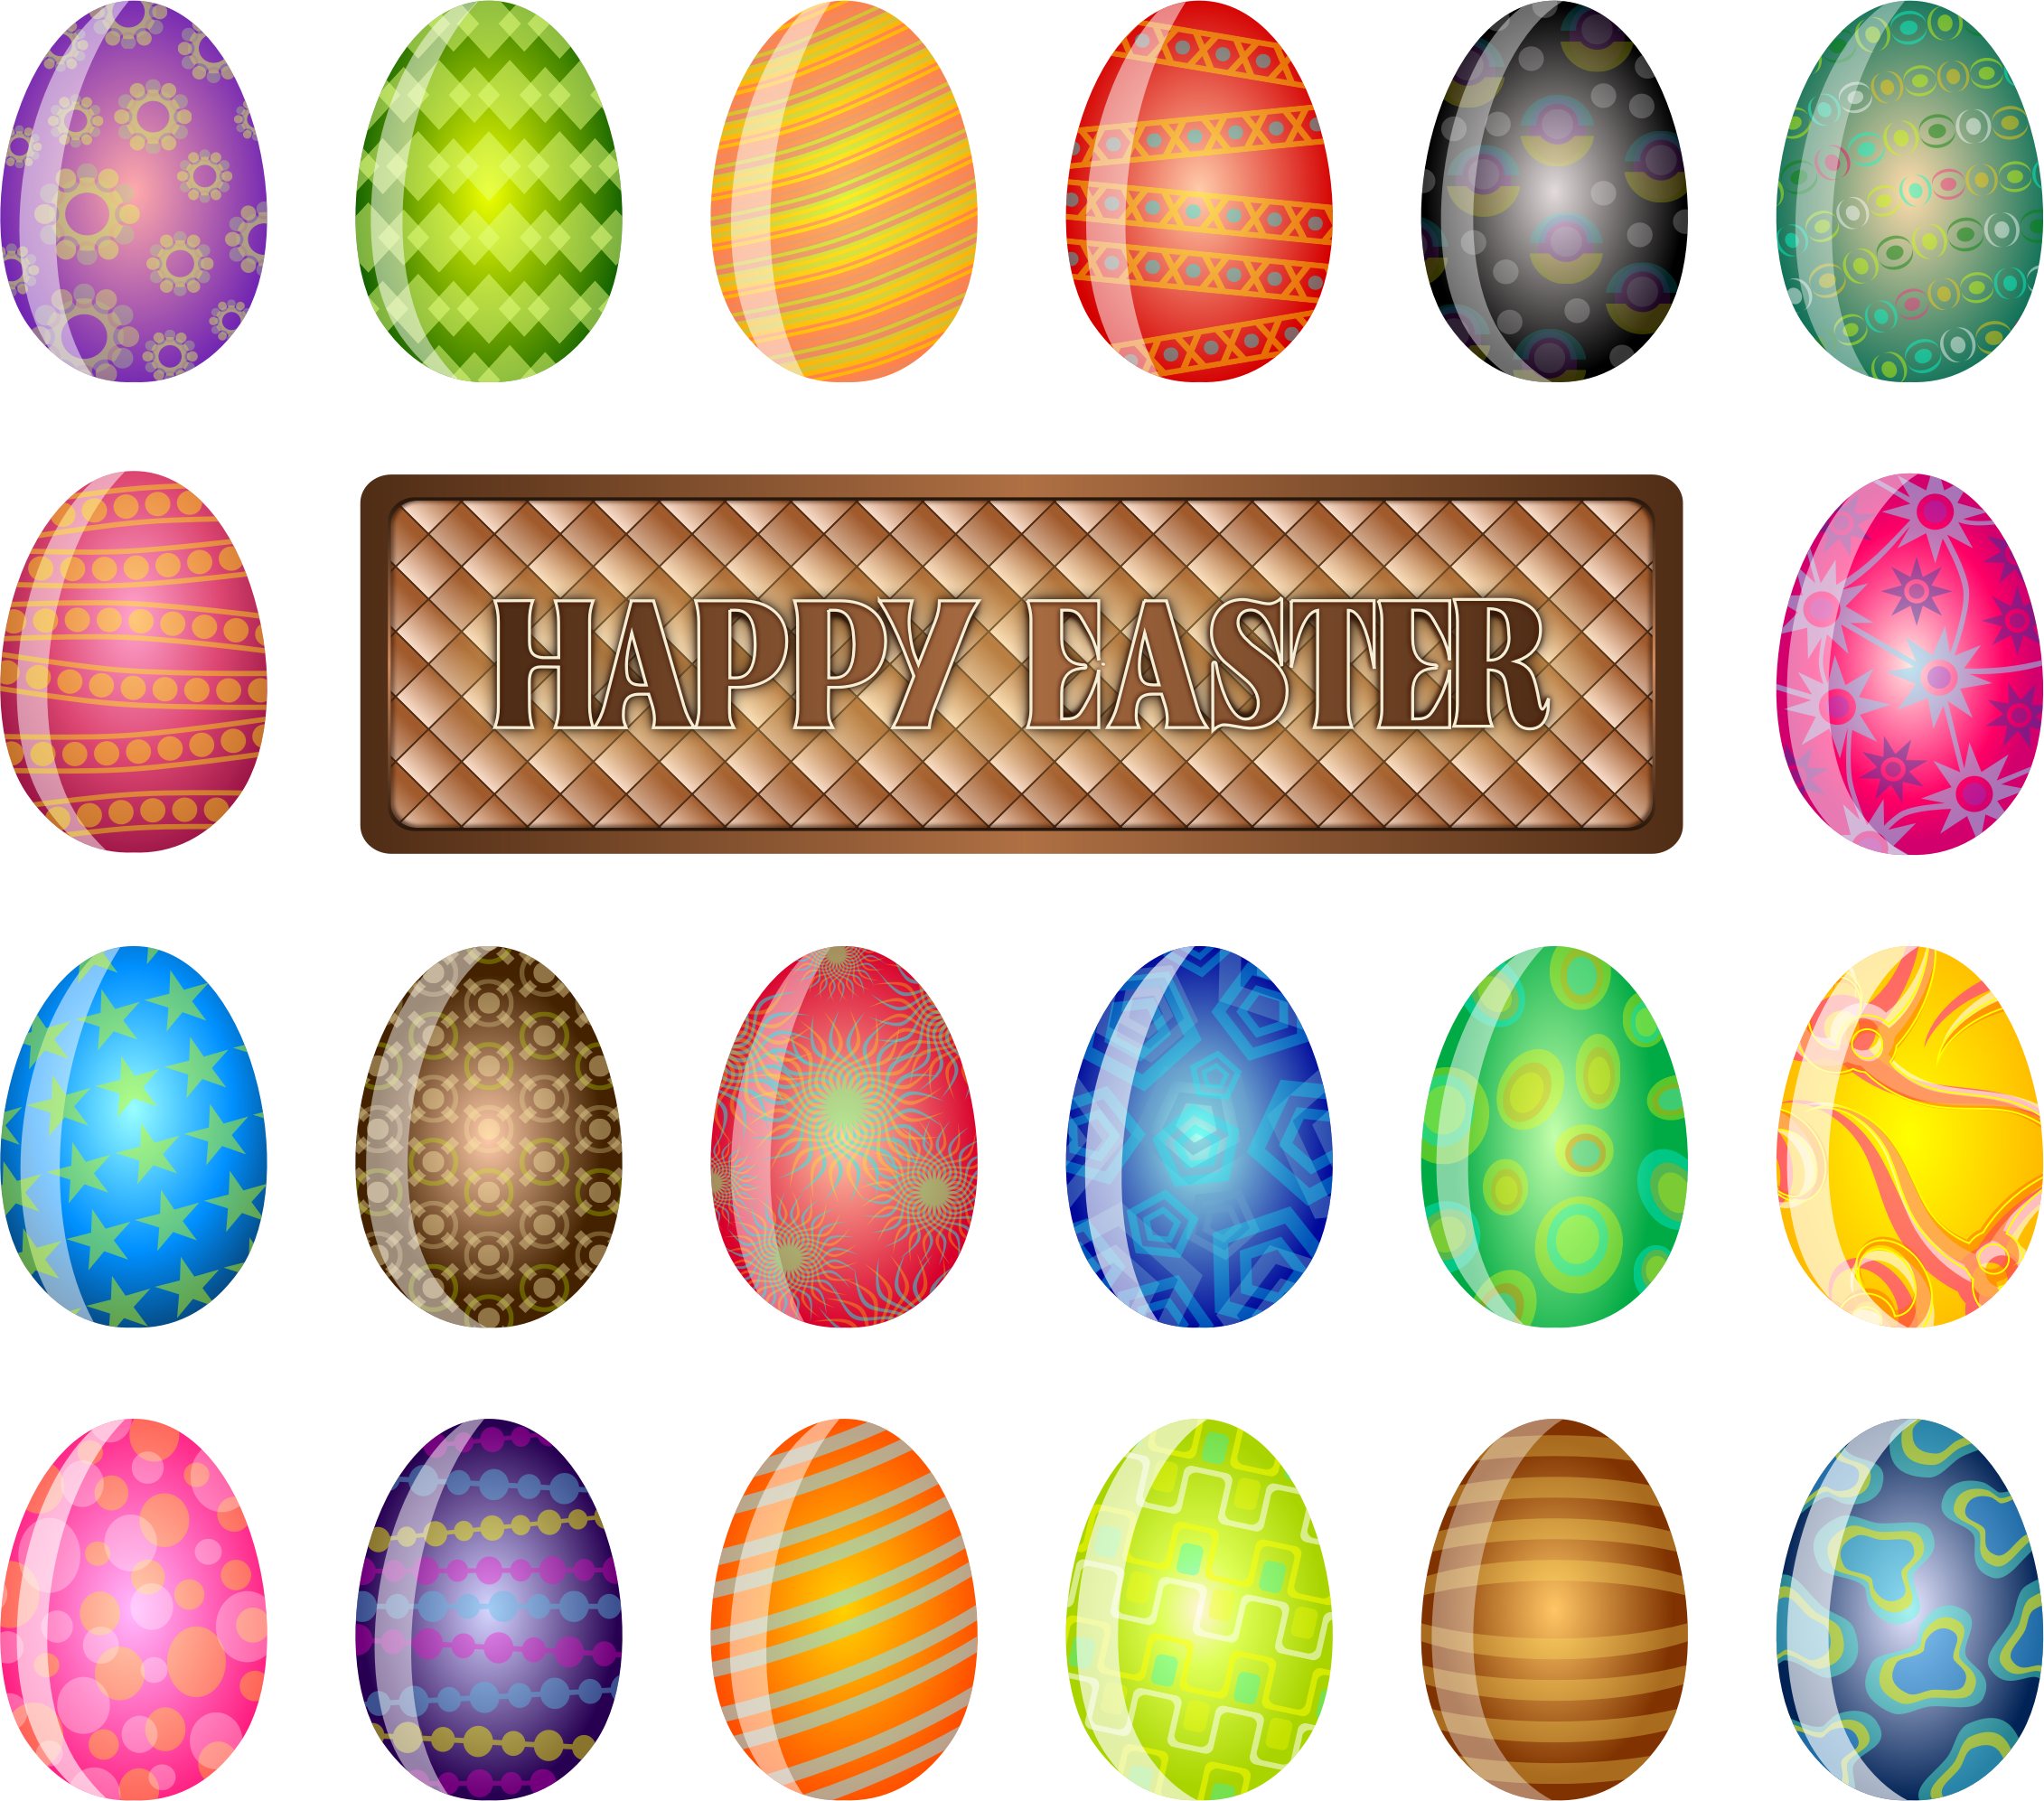 Happy Easter Sign by chad78